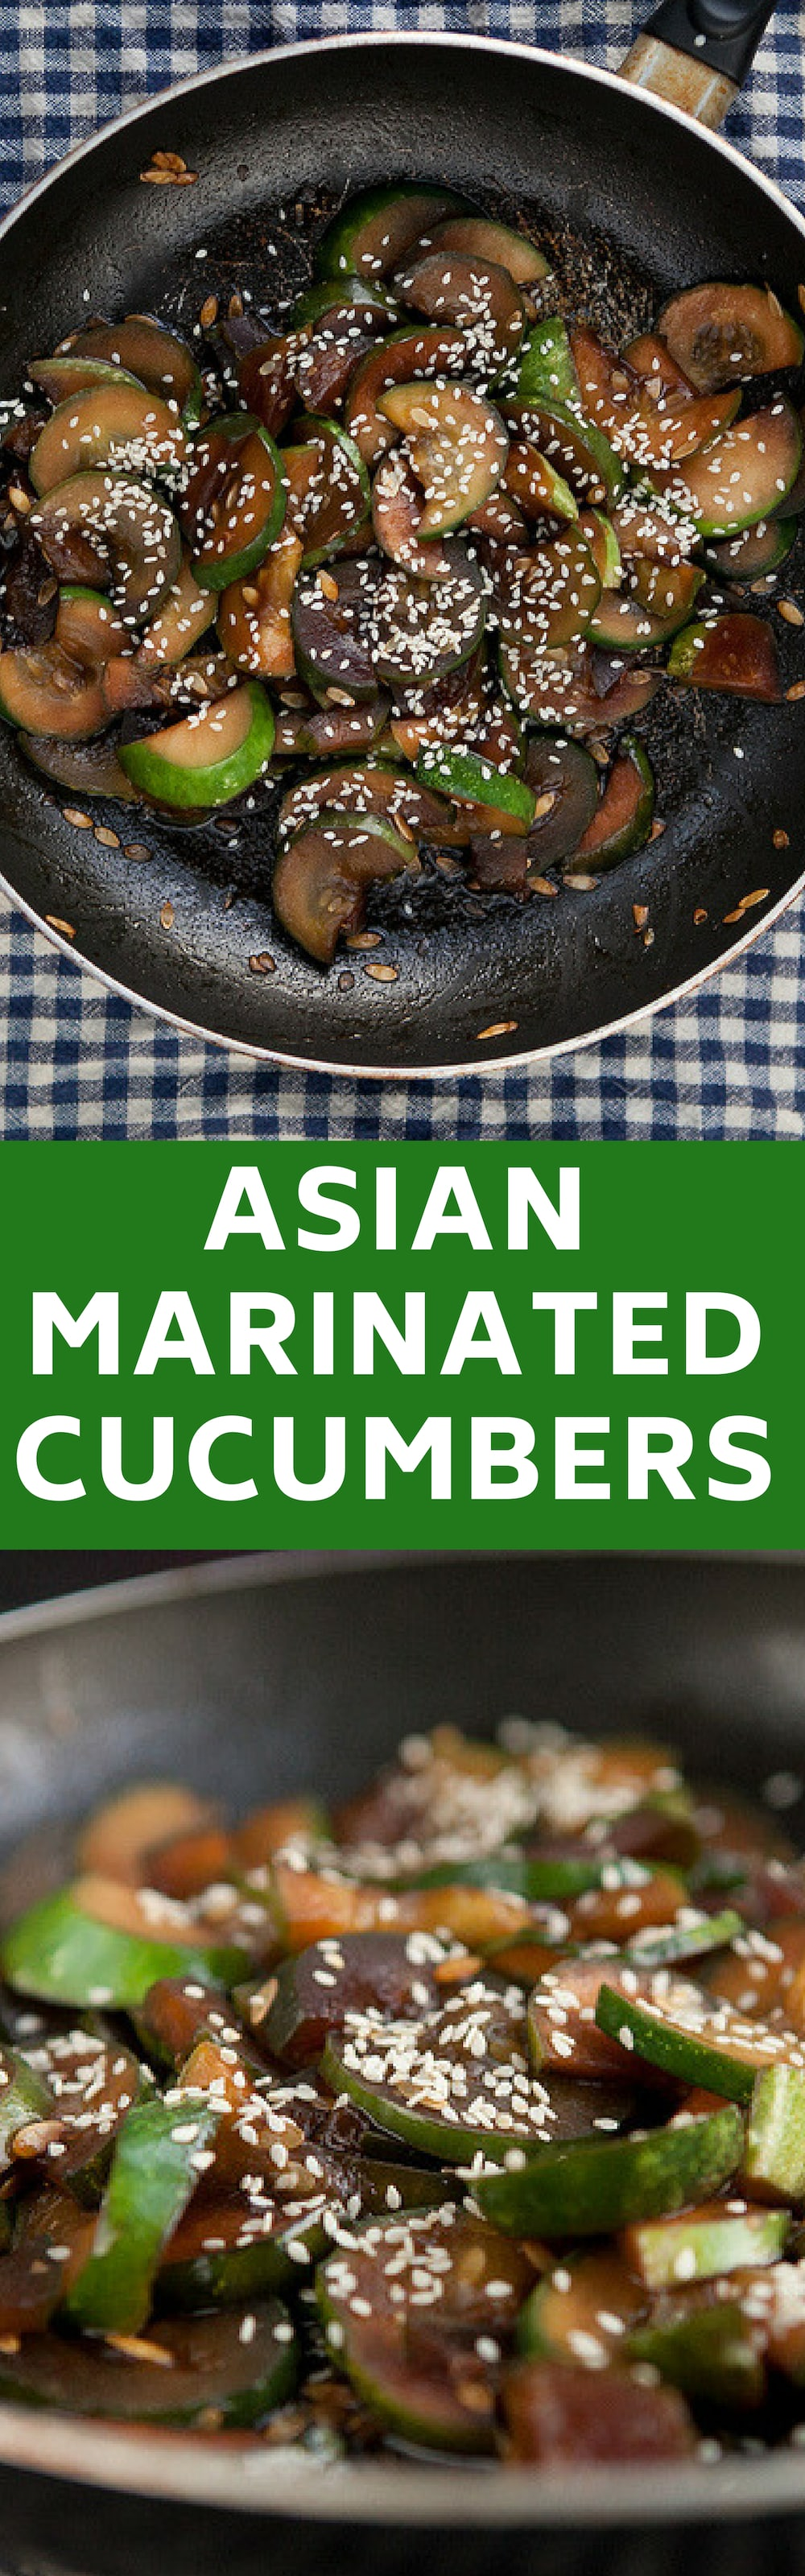 Easy to make Asian marinated cucumbers!  This healthy recipe is cooked  in 10 minutes.  My family loves it served over rice or with chicken.